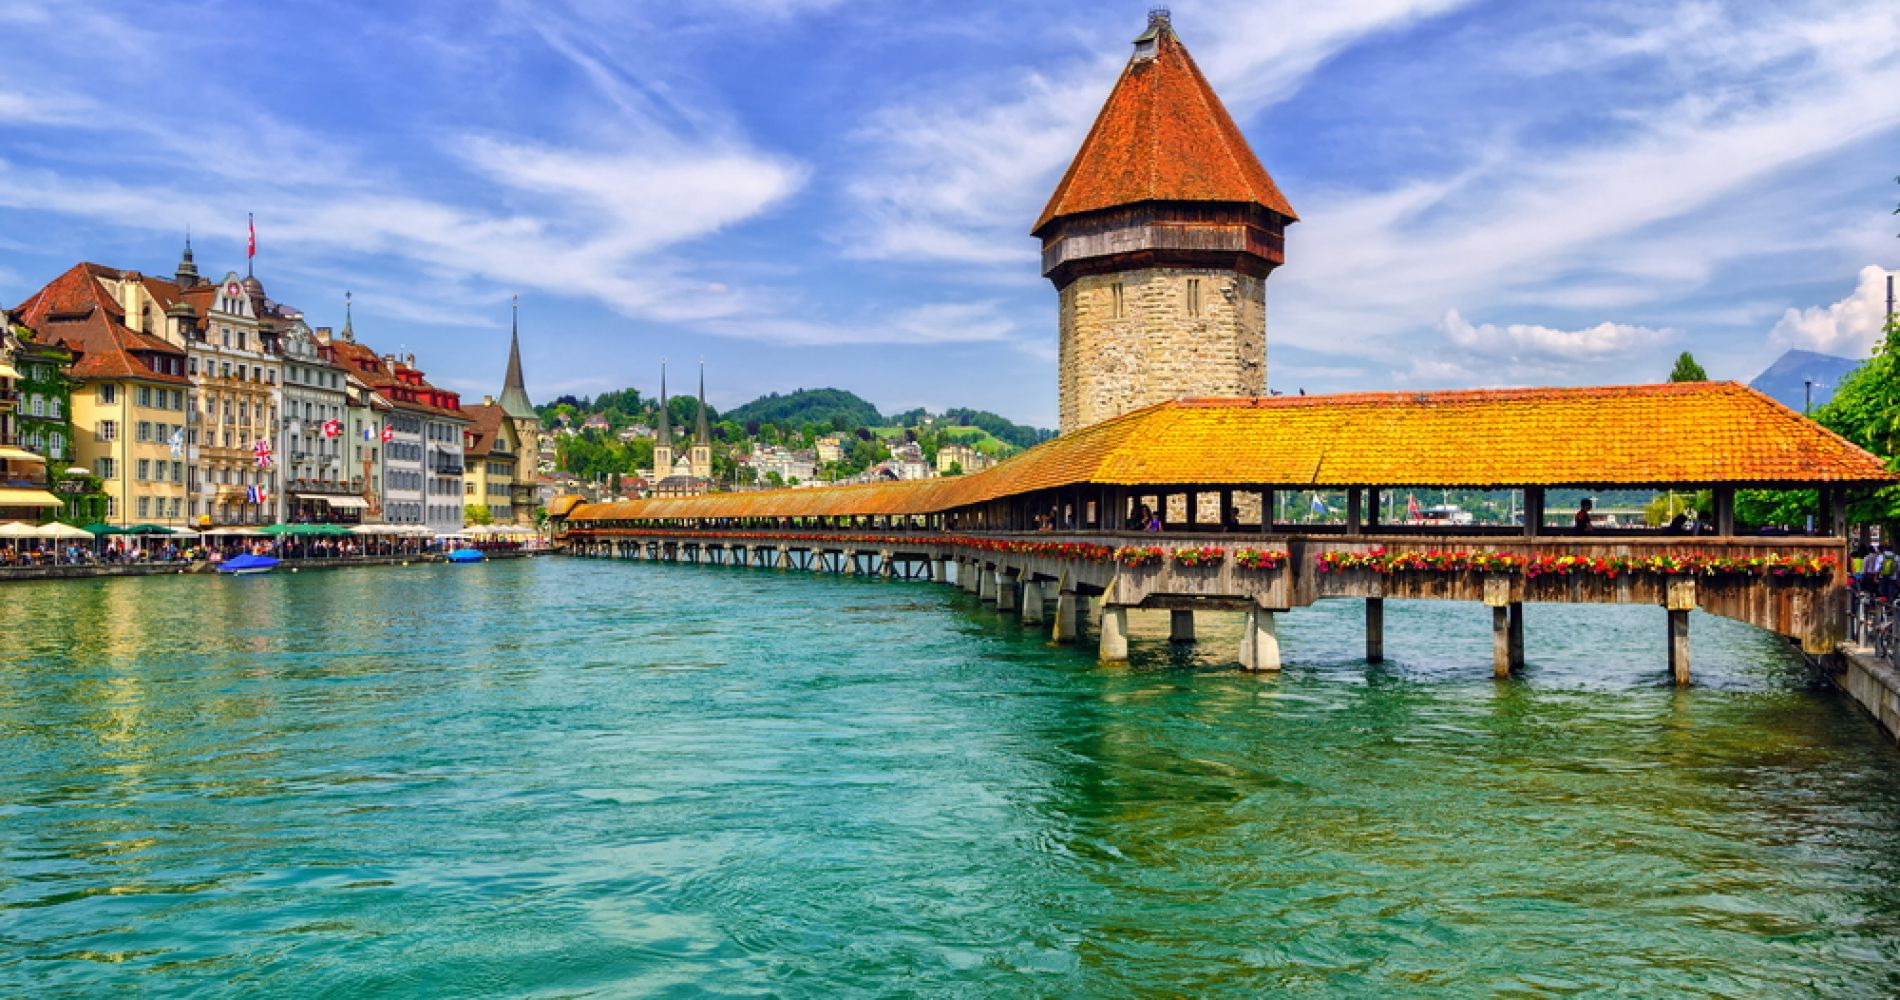 Visit a Beautiful Lake of Lucerne